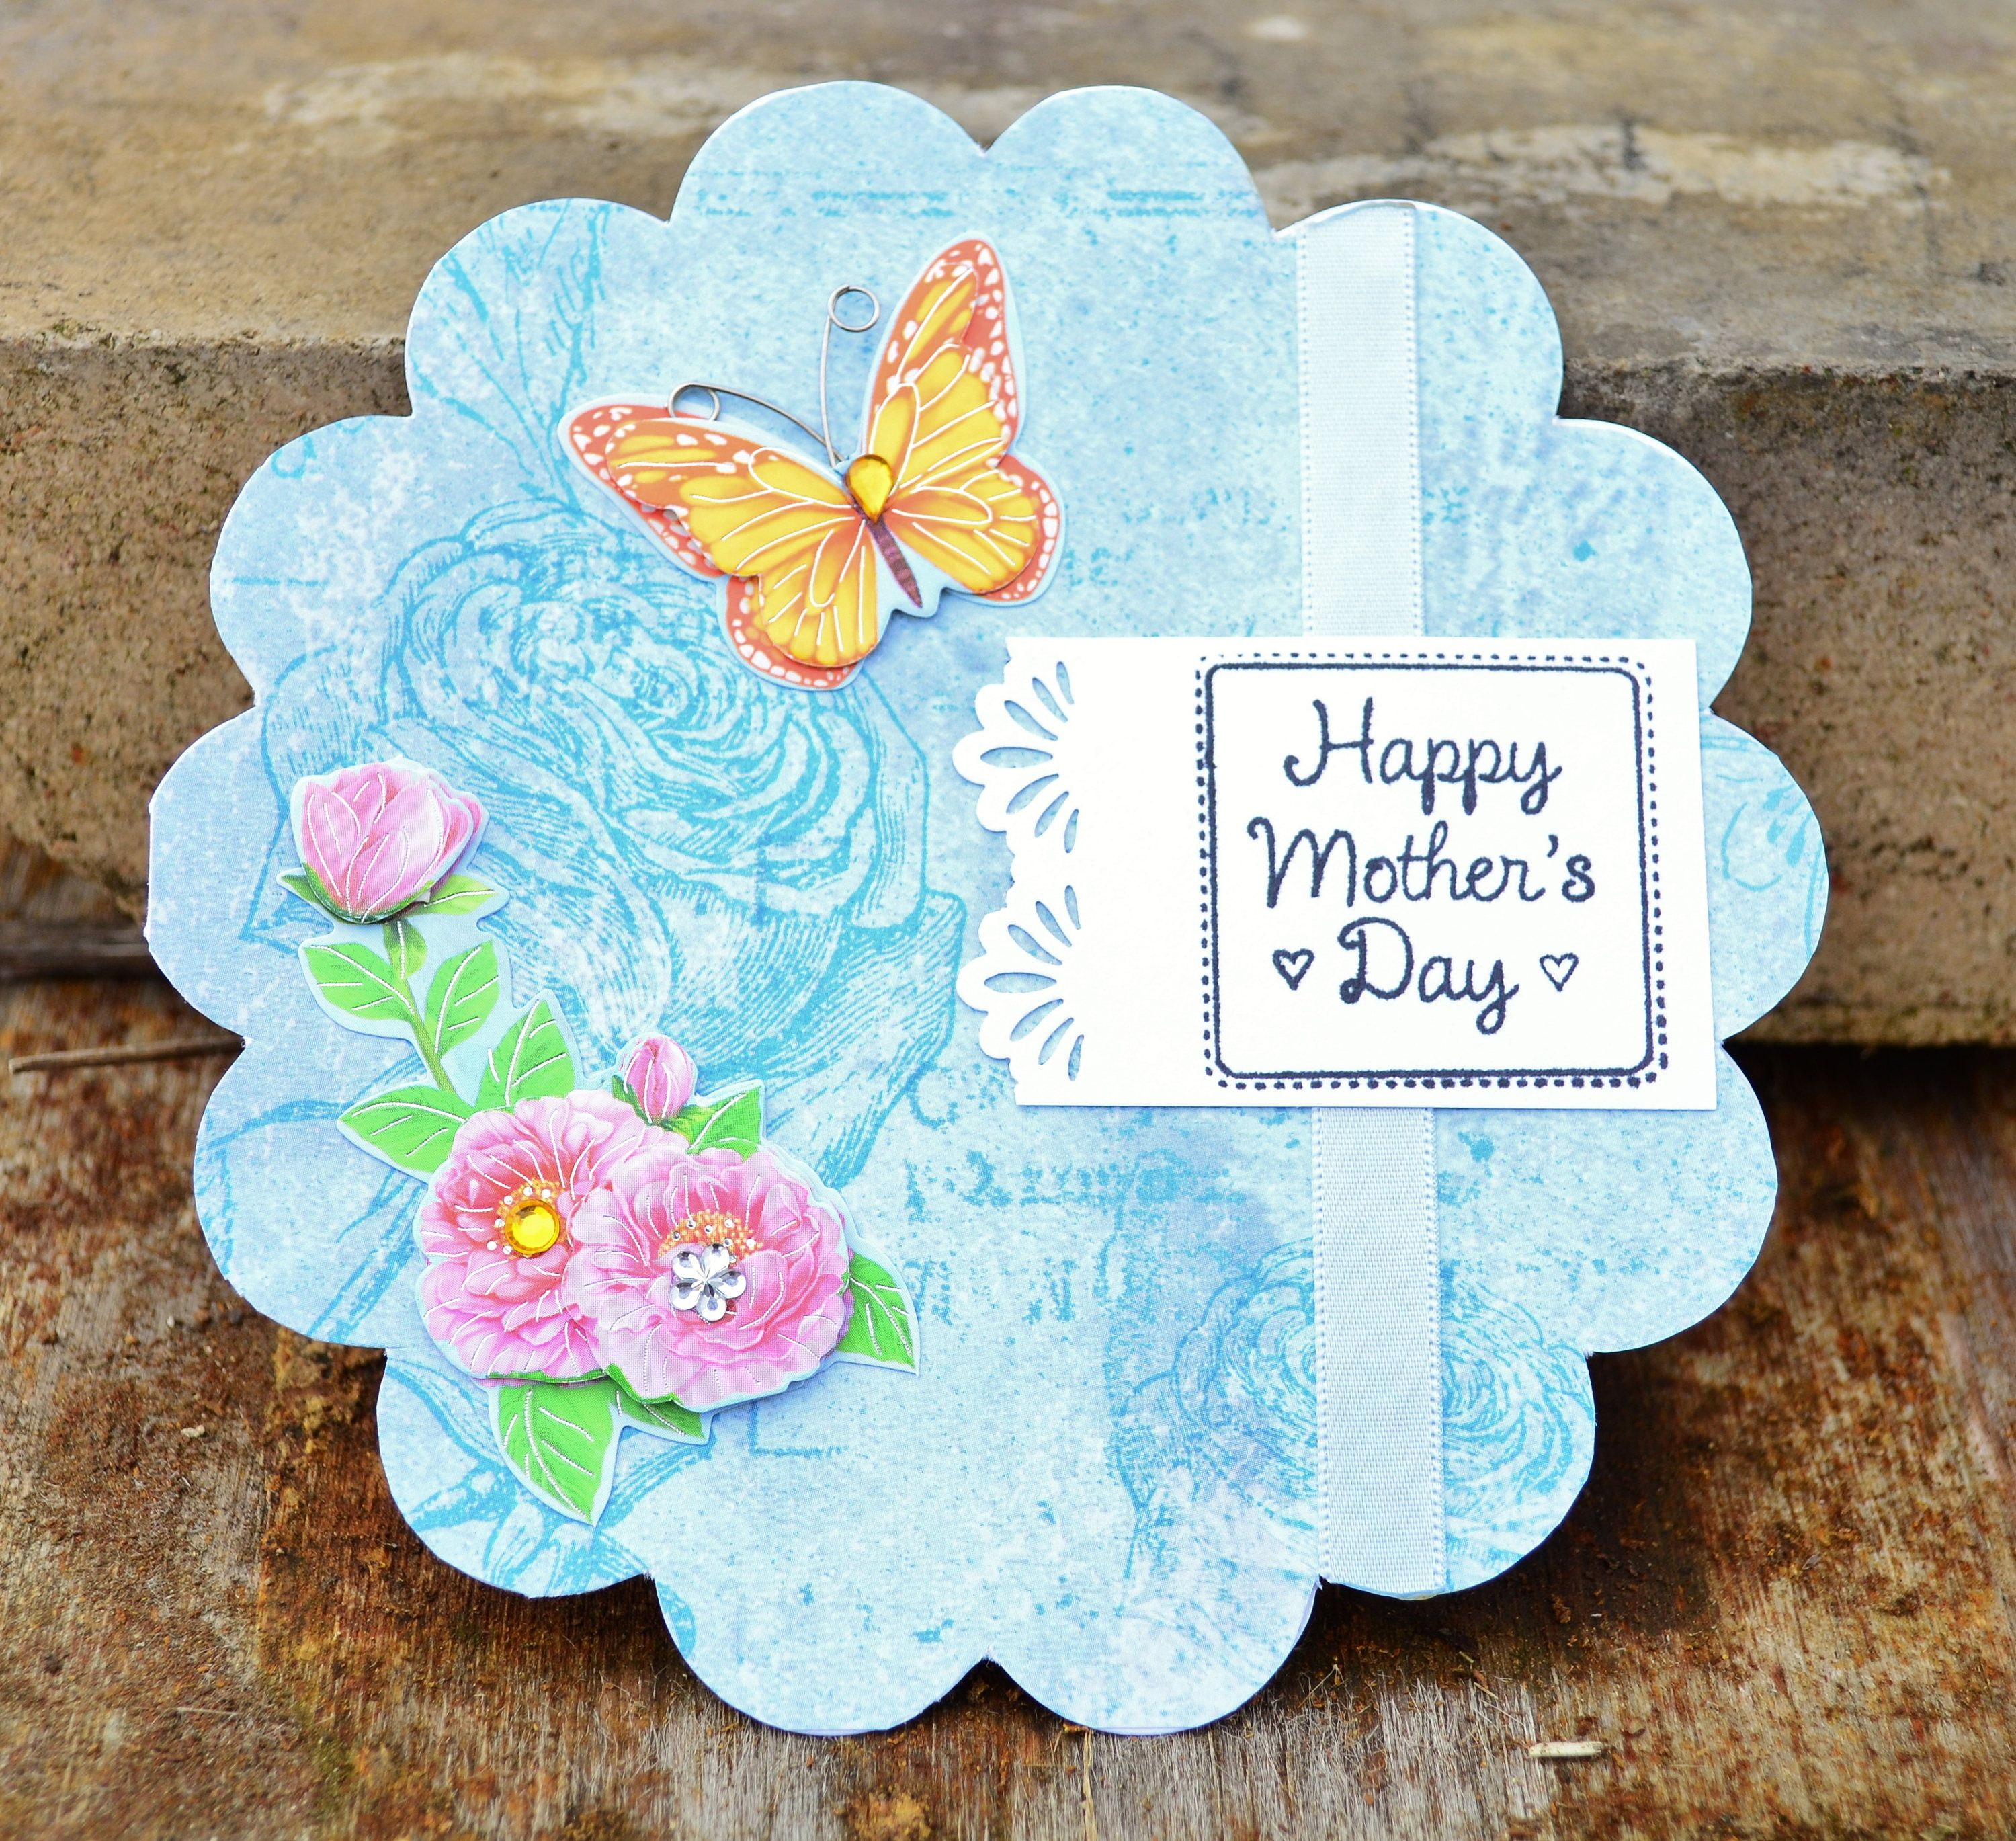 Mom day card motherus day card for mom light blue flower shaped